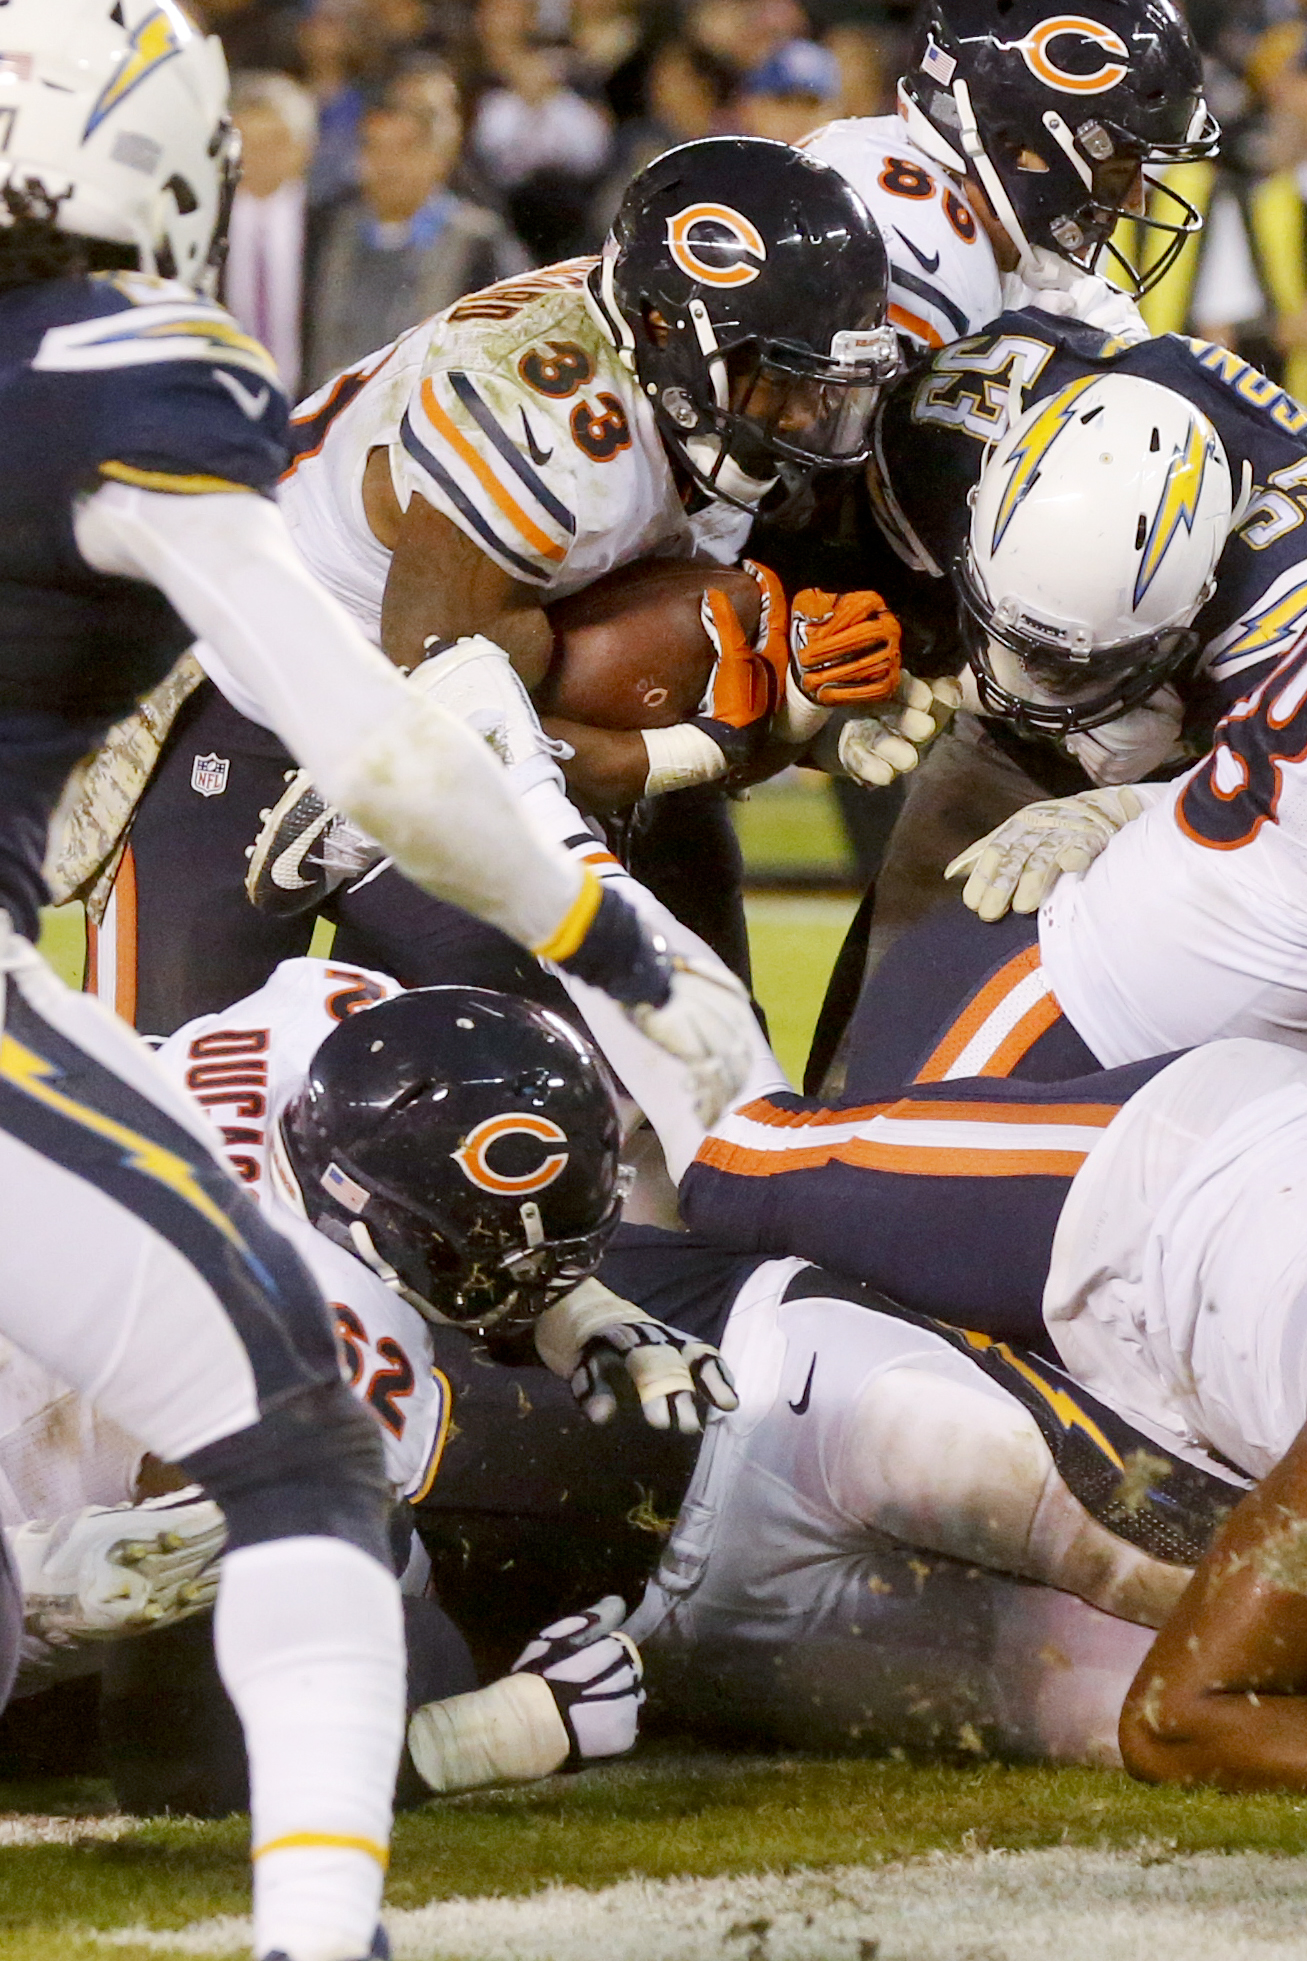 Chicago Bears running back Jeremy Langford, above, scores a touchdown during the second half of an NFL football game against the San Diego Chargers, Monday, Nov. 9, 2015, in San Diego. (AP Photo/Lenny Ignelzi)